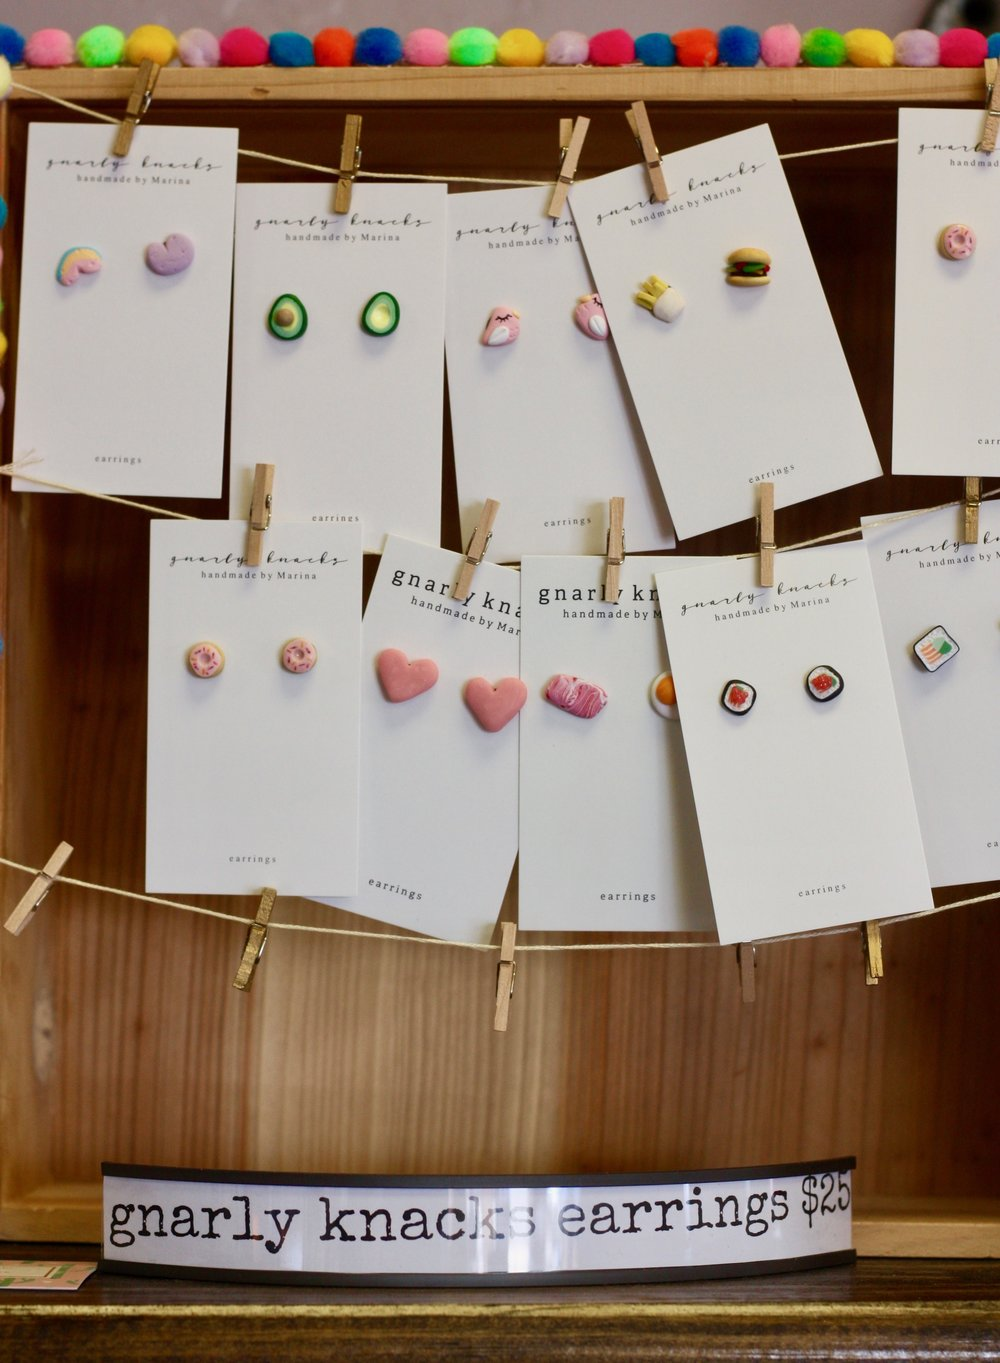 Dedicated supports local artisans by selling their handmade goods, including these adorable food-inspired earrings, at the bakery.